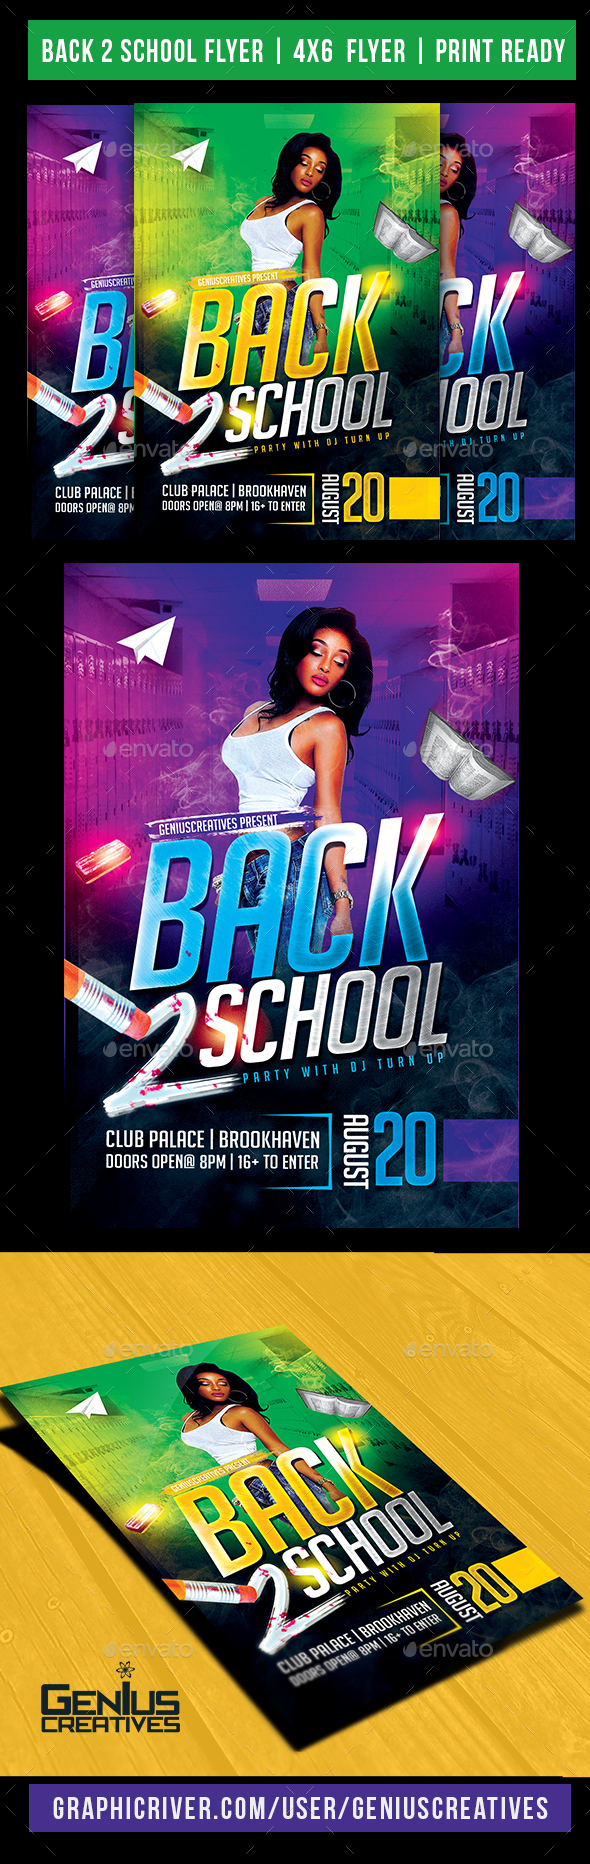 Back 2 School Party Flyer - Events Flyers